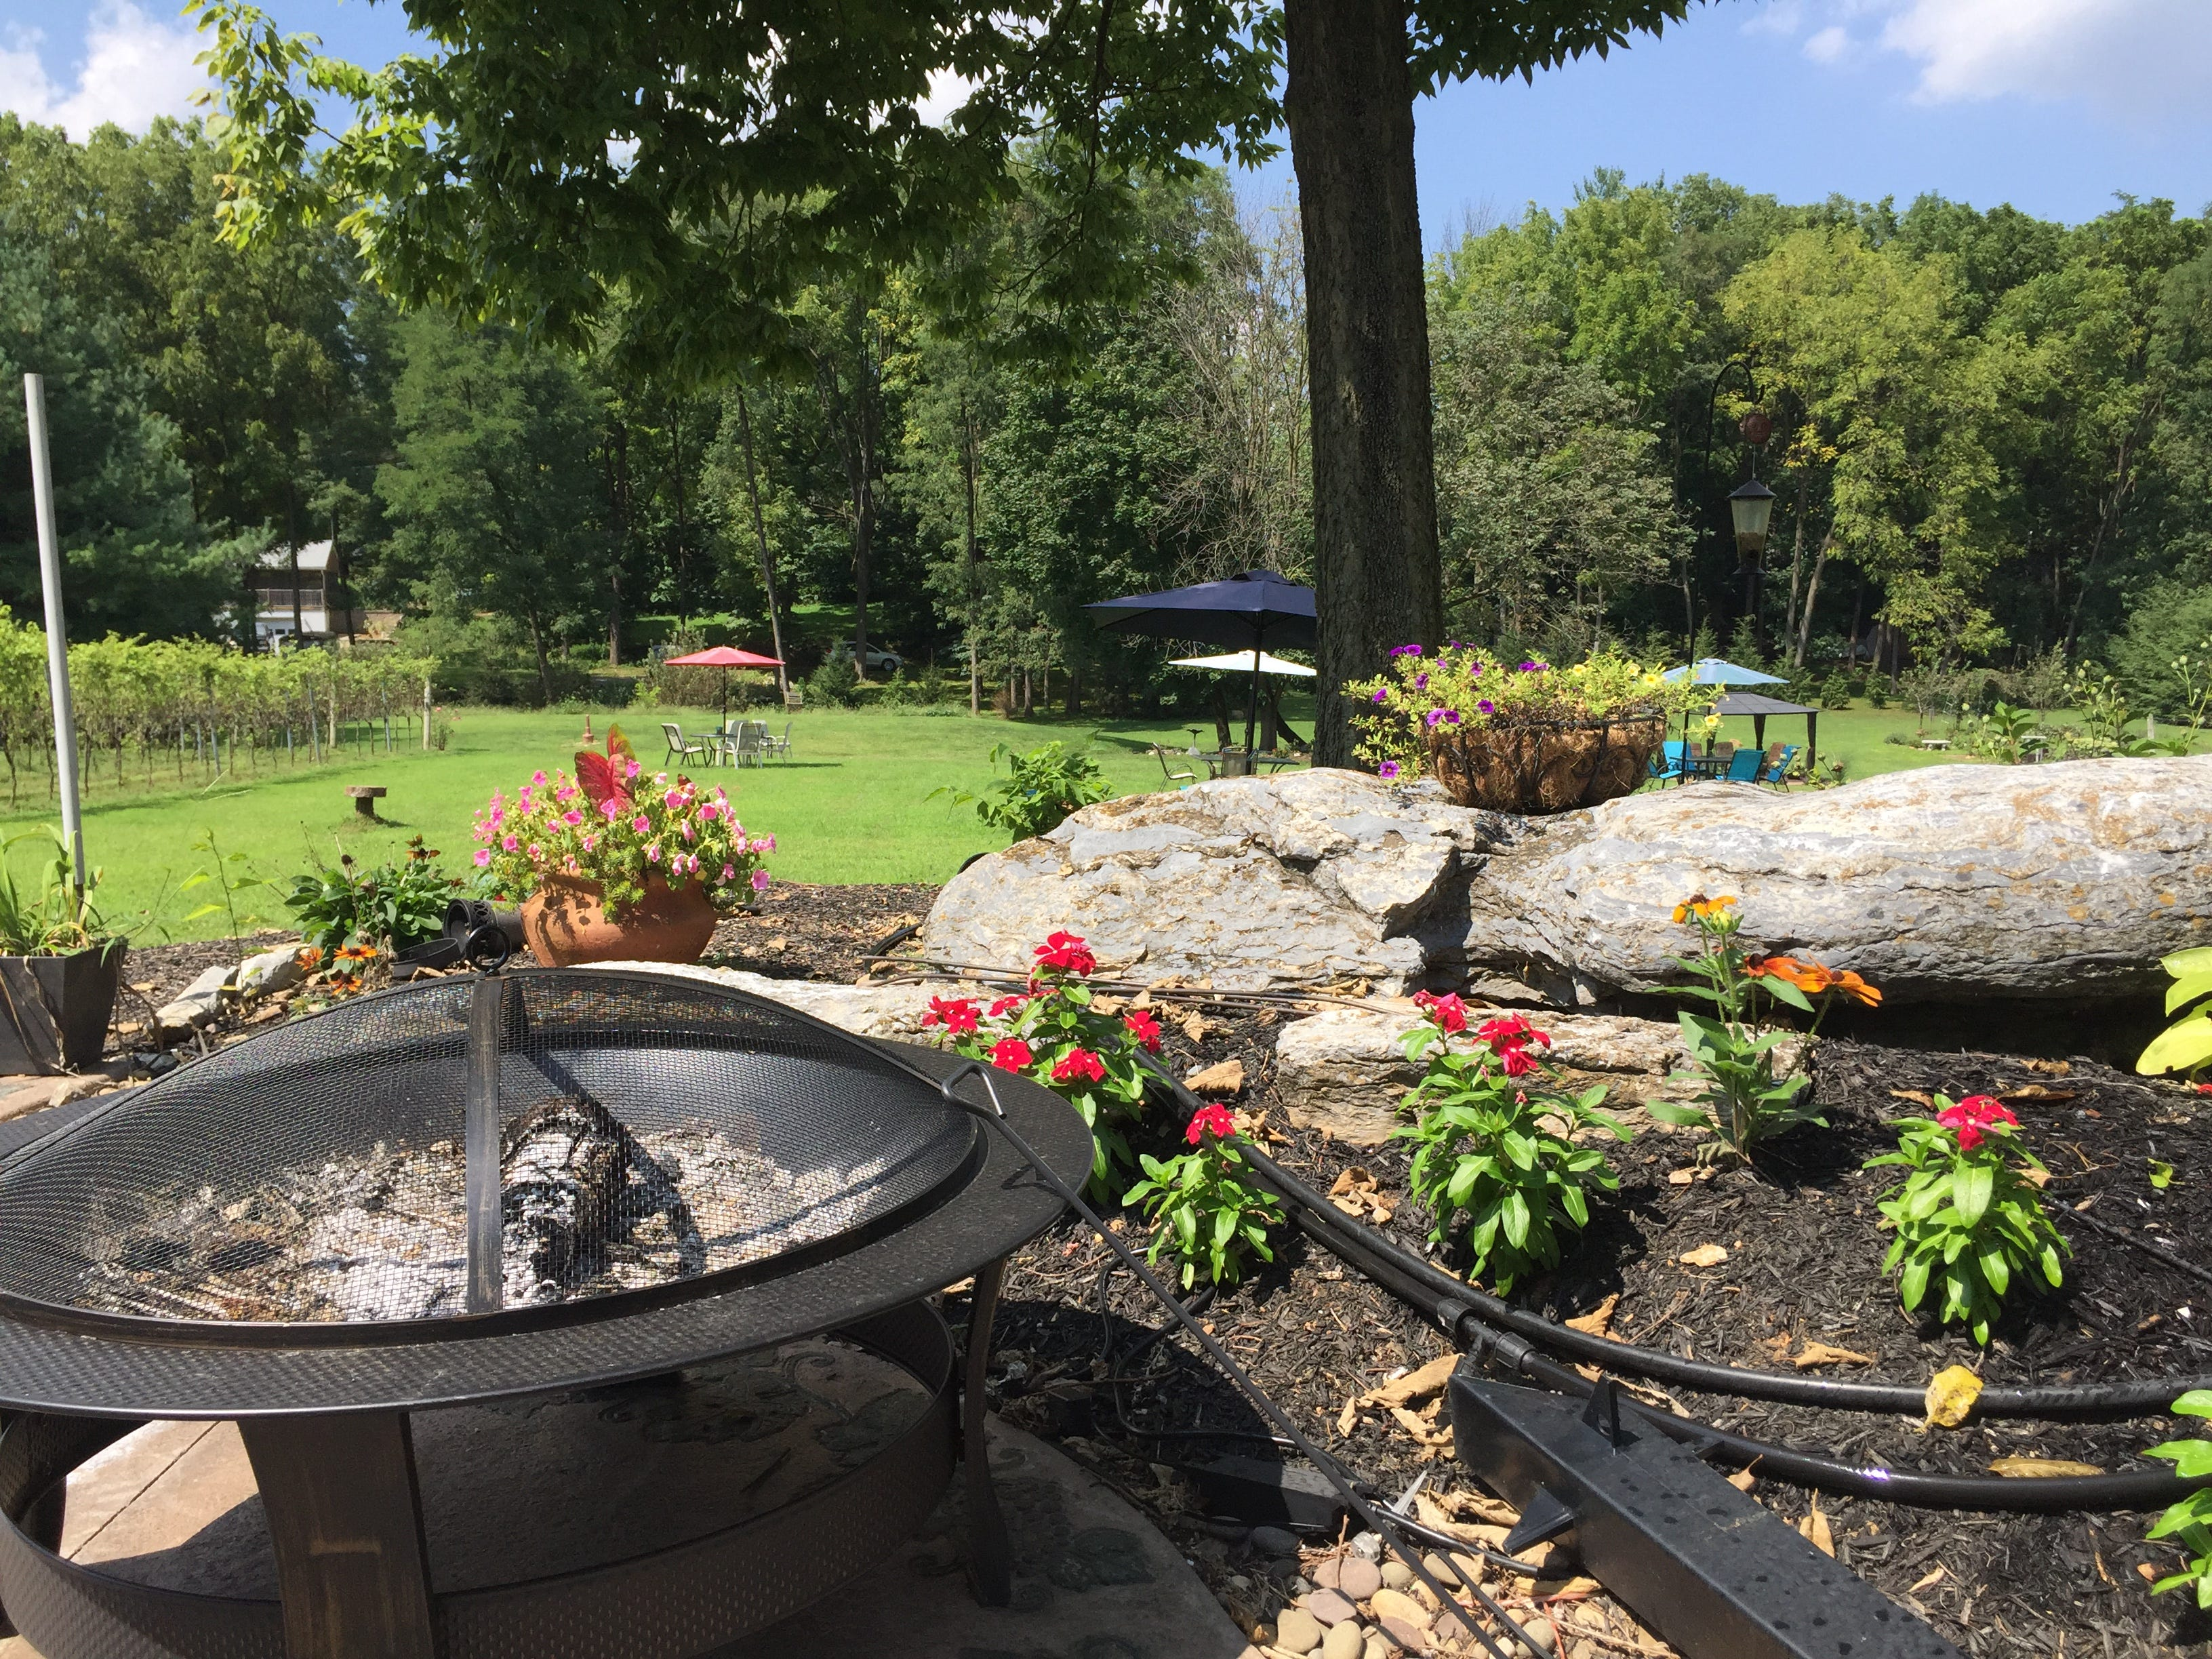 A view from the outdoor area of the tasting room at Royal Oaks Vineyard & Winery located at 399 Royal Road, Aug. 29, 2018. The winery has remained open despite an ongoing legal battle over zoning issues between Bill Hartmann, the winery's owner, and North Cornwall Township.